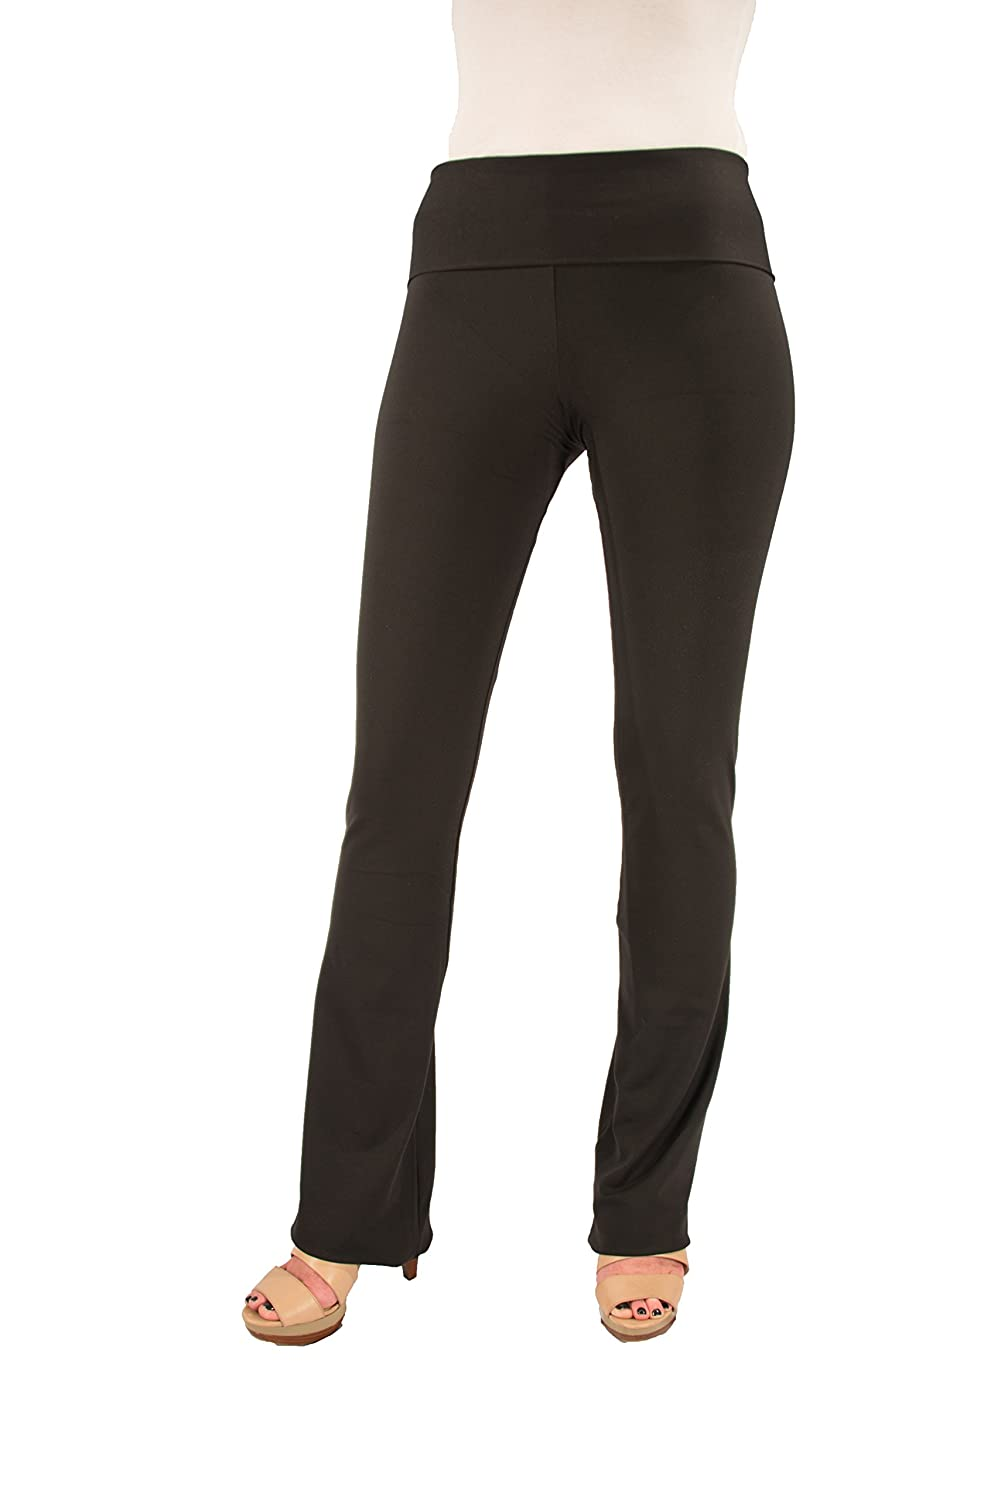 """Hold Your Haunches """"As Seen on Shark Tank"""" Women's Booty Patootie Bootcut Pants-XS-Black-32""""Inseam"""